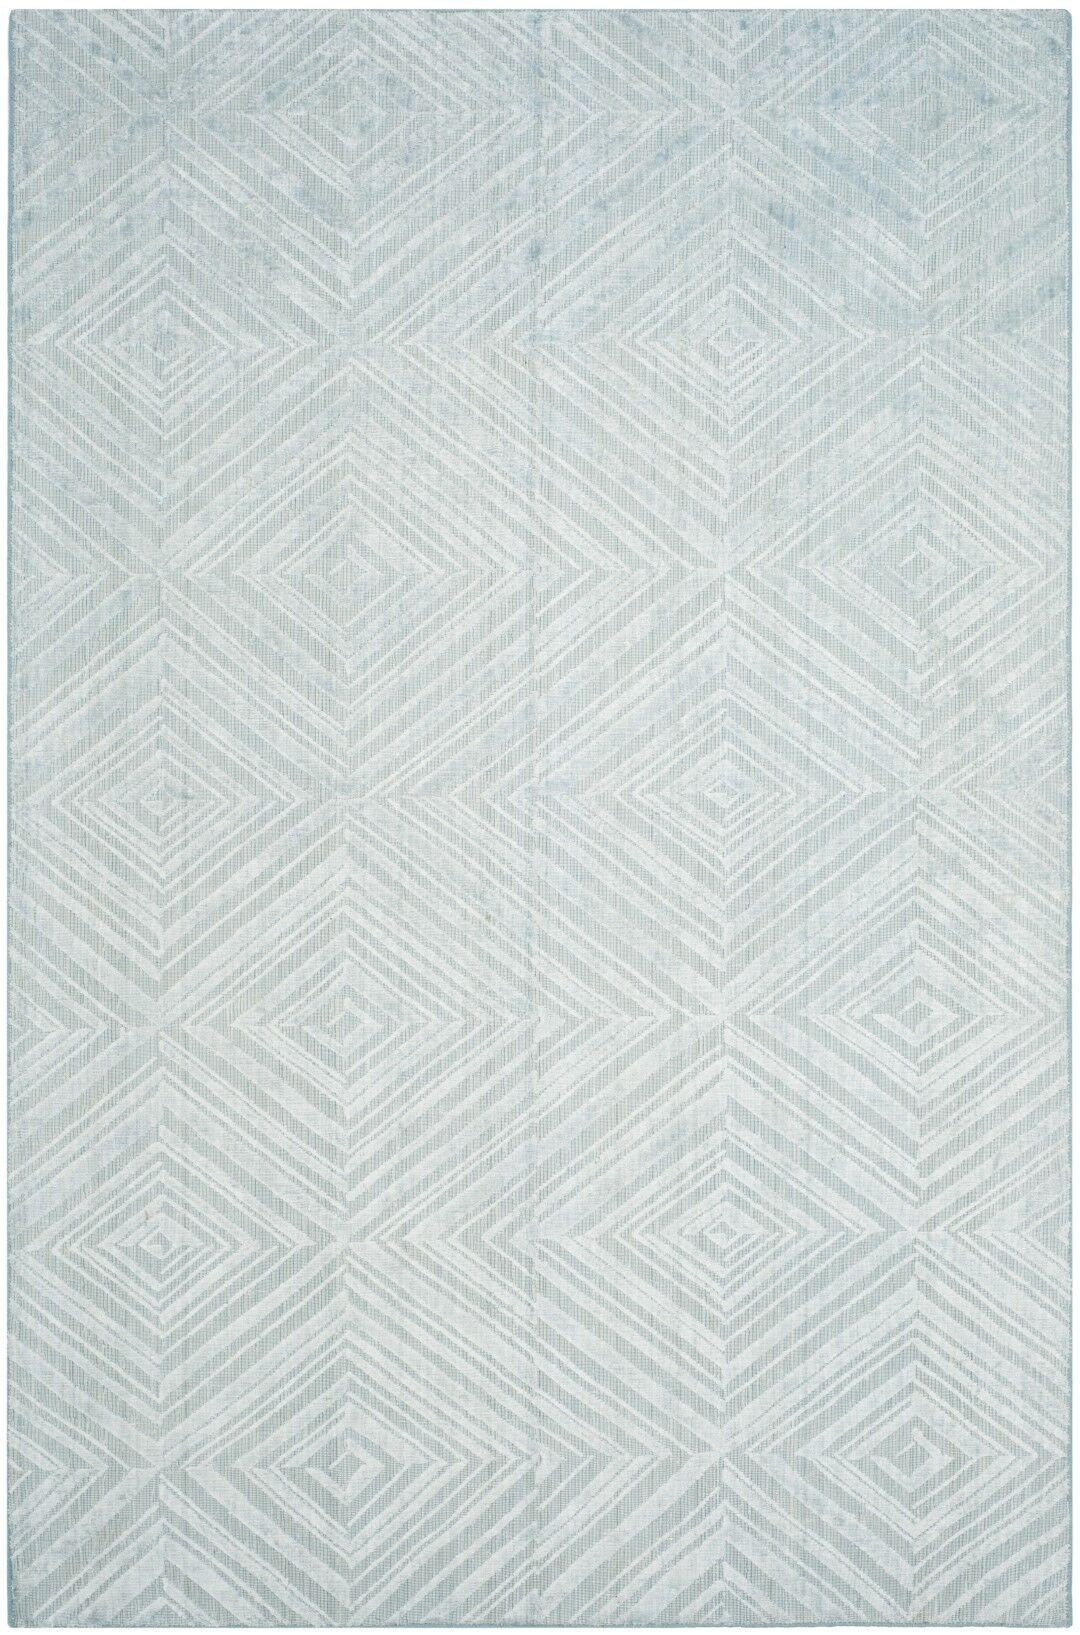 Maxim Hand-Woven Blue Area Rug Rug Size: Rectangle 8' x 10'